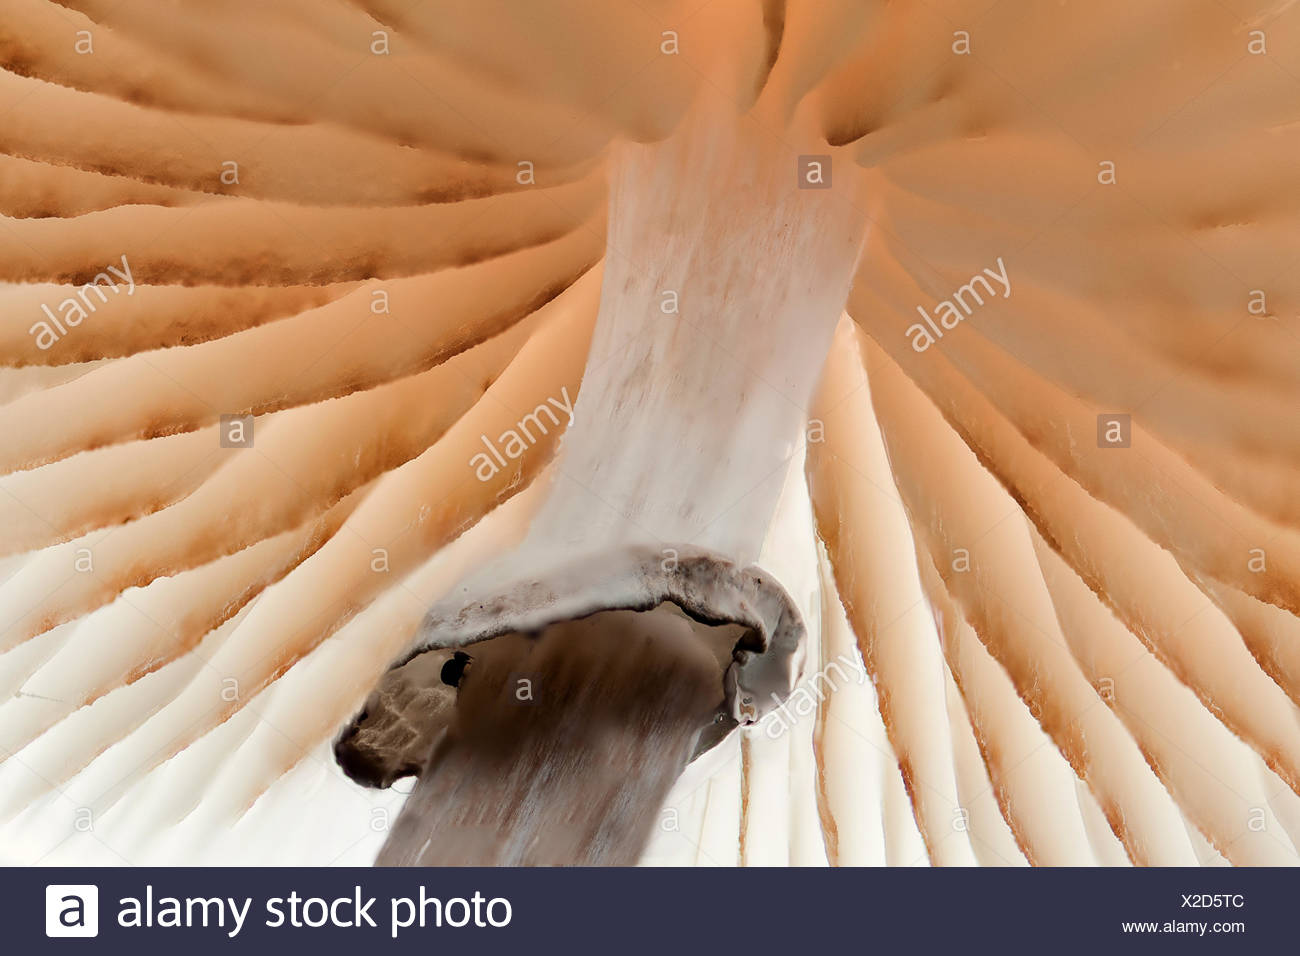 Bottom site of porcelain mushroon in olterterp. - Stock Image